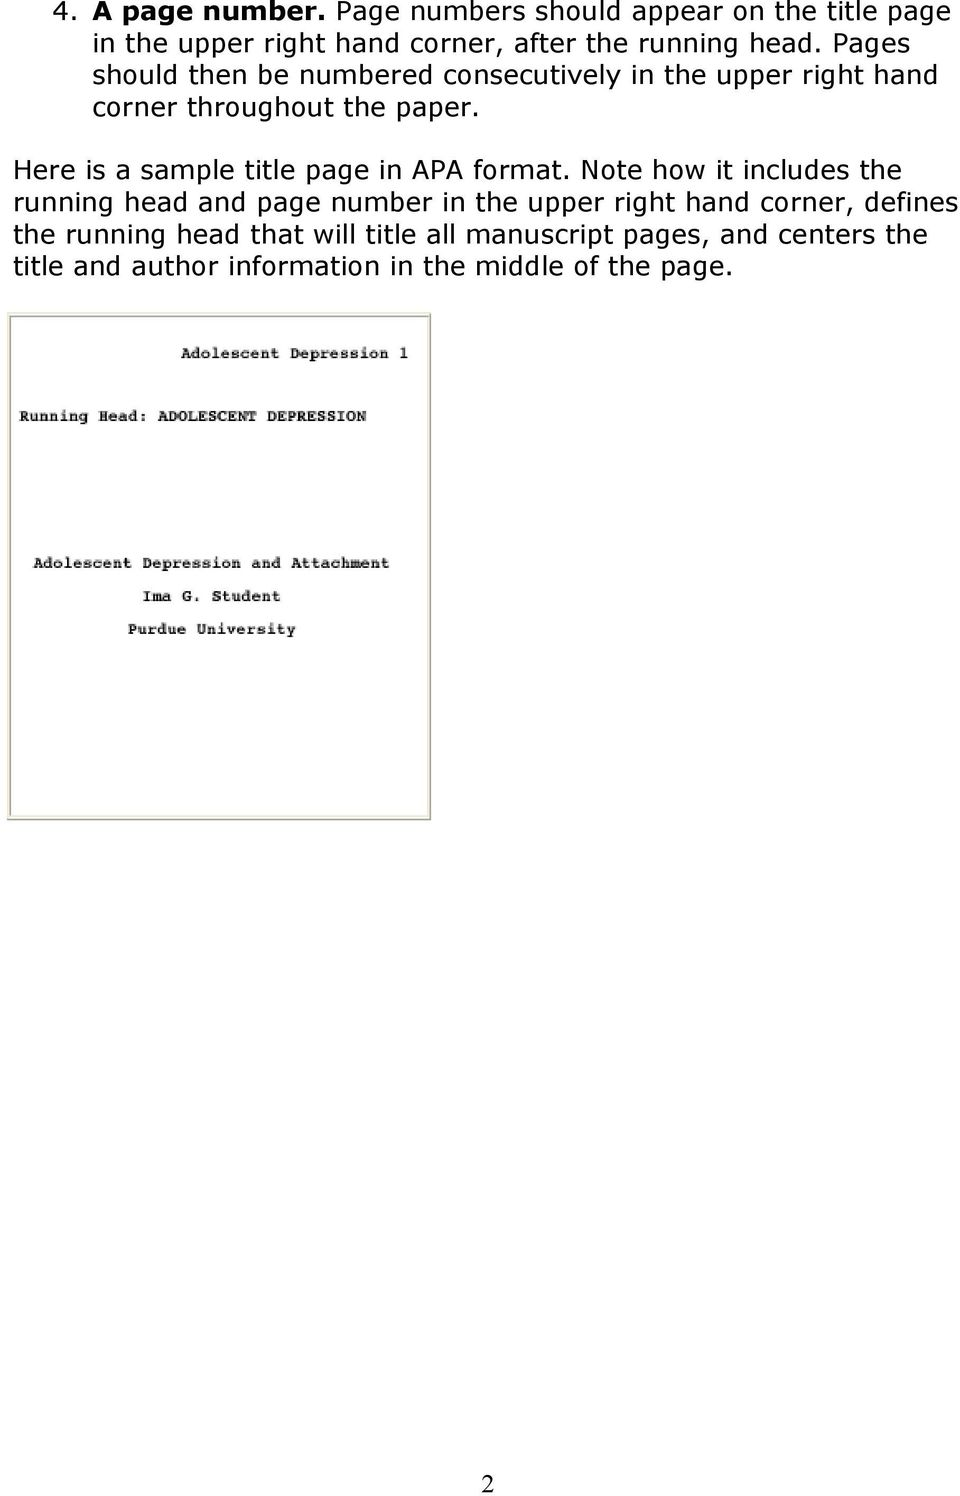 Here is a sample title page in APA format.